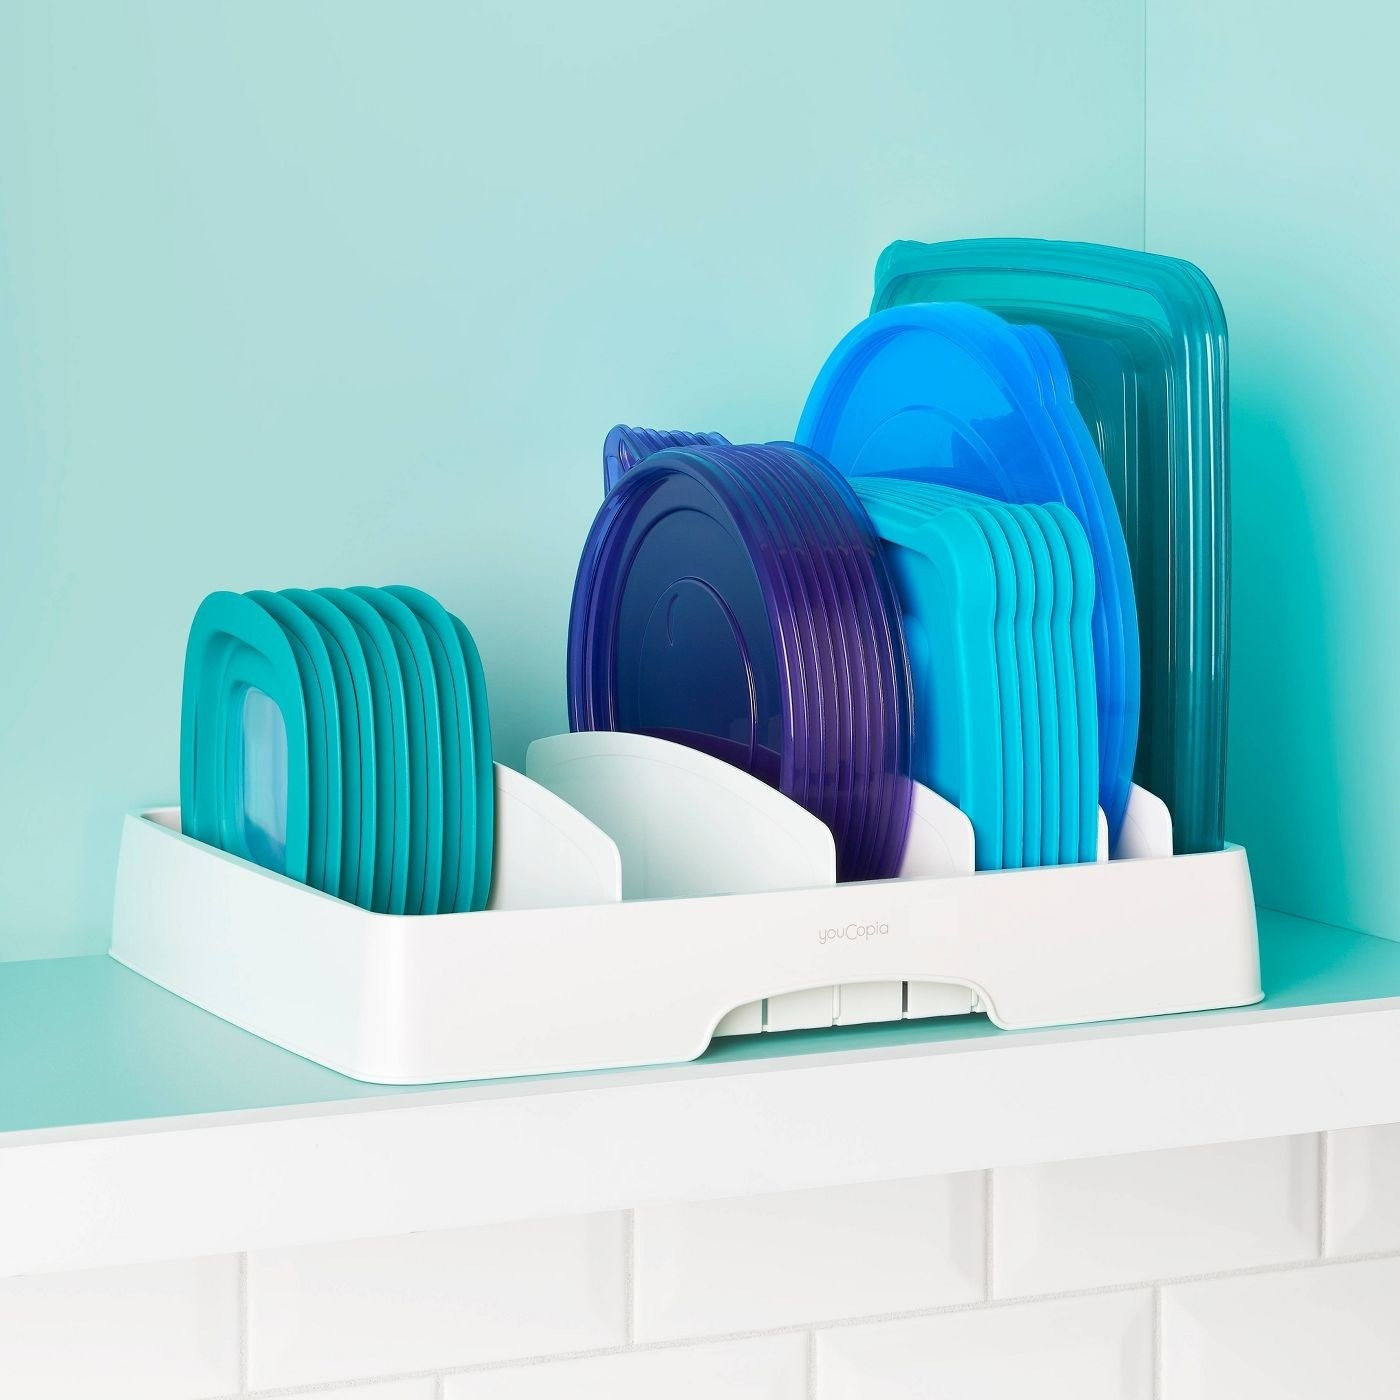 The container lid organizer